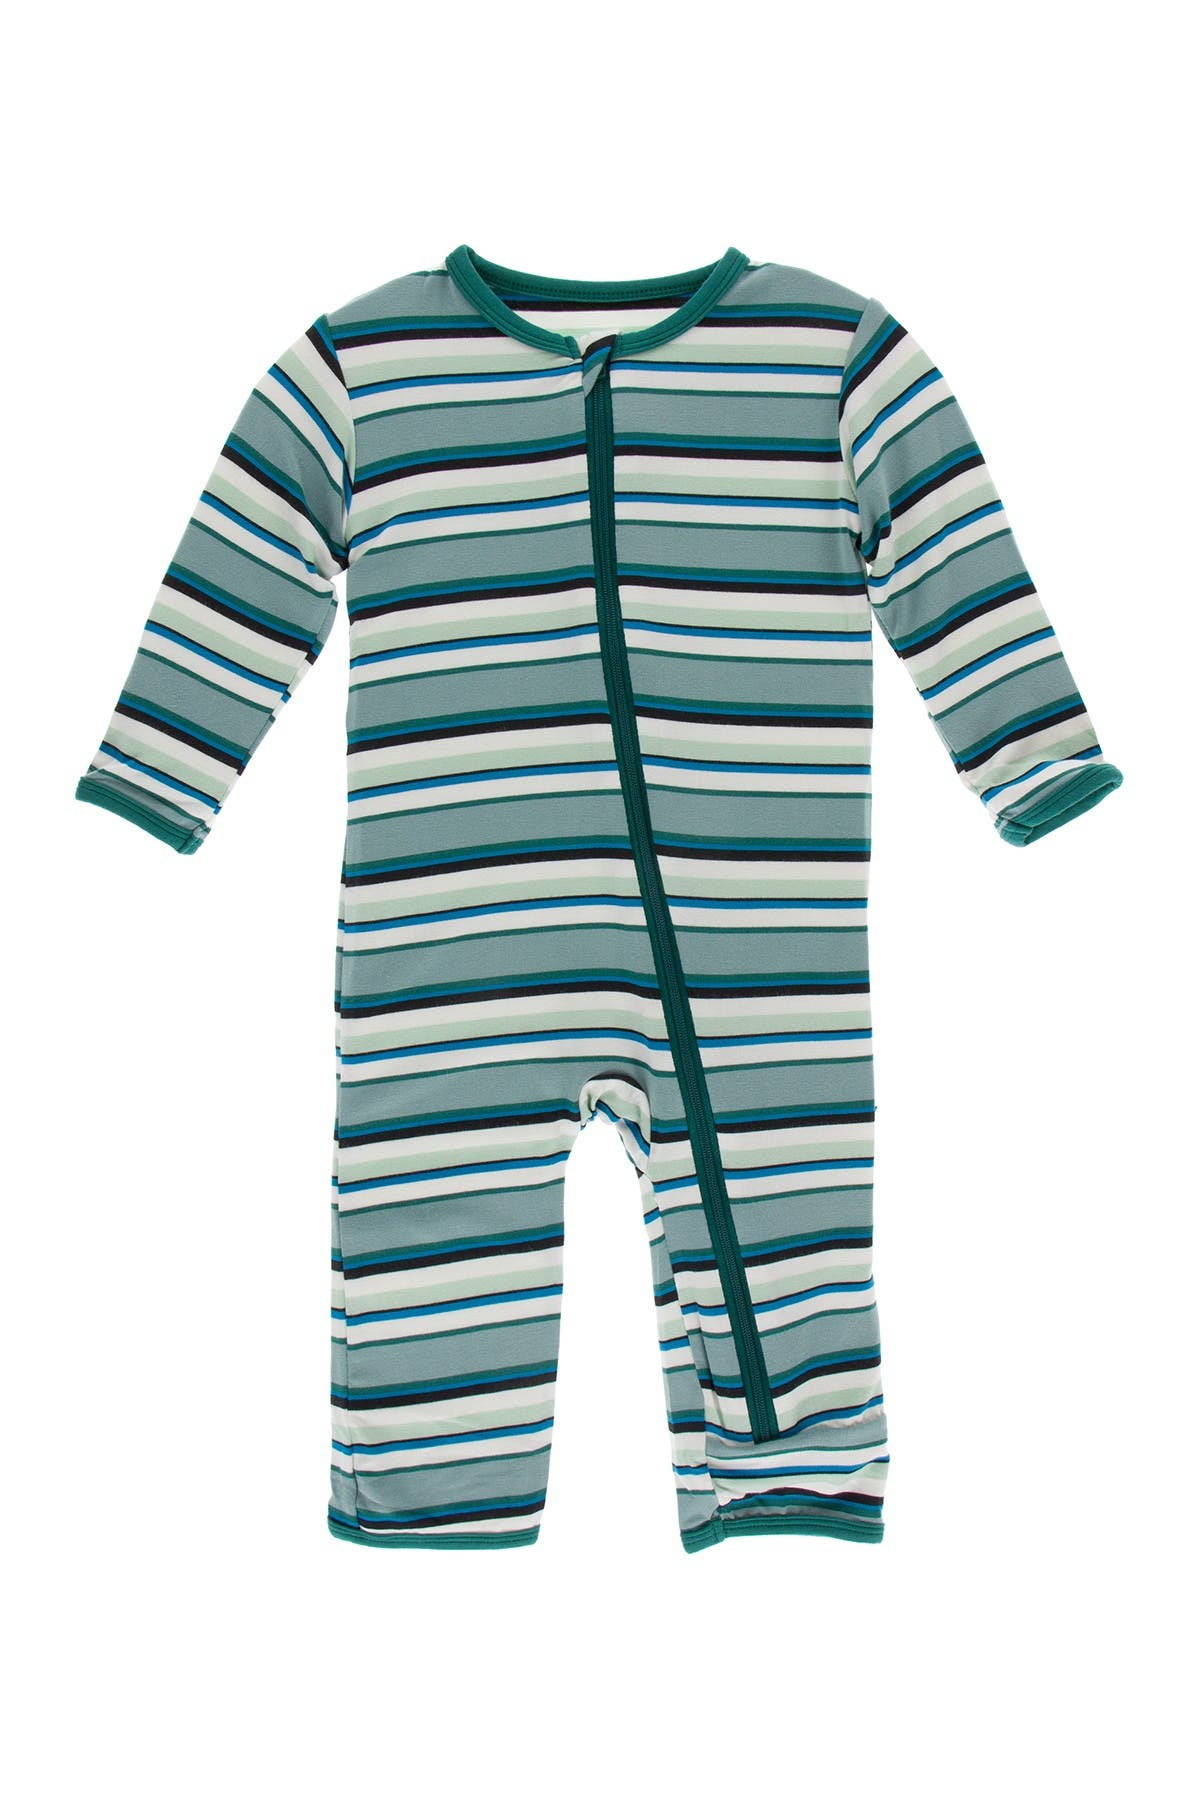 Image of KicKee Pants Print Coverall w/ Zipper in Multi Agriculture Stripe